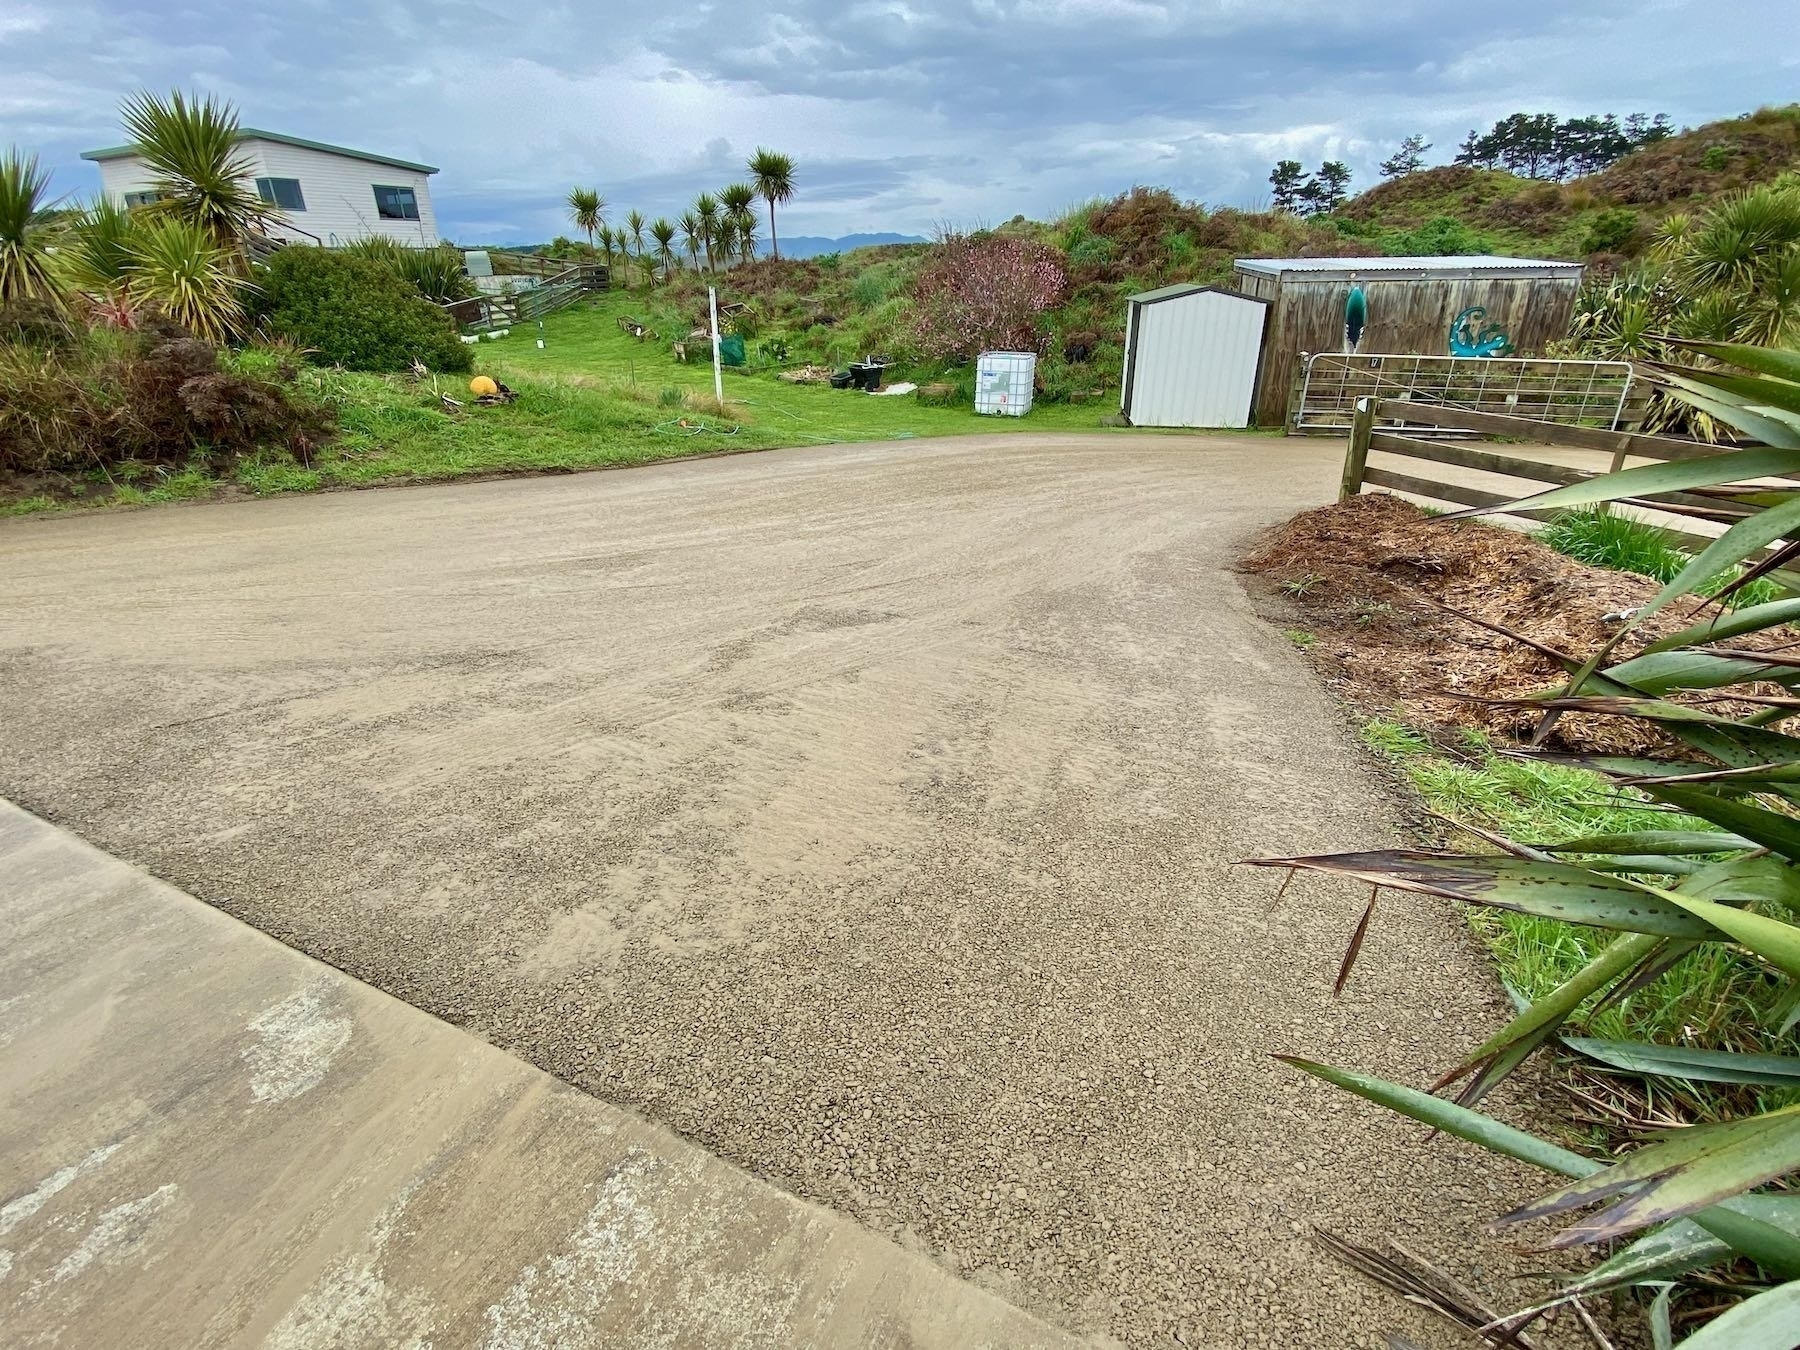 Our resurfaced driveway section from another angle.